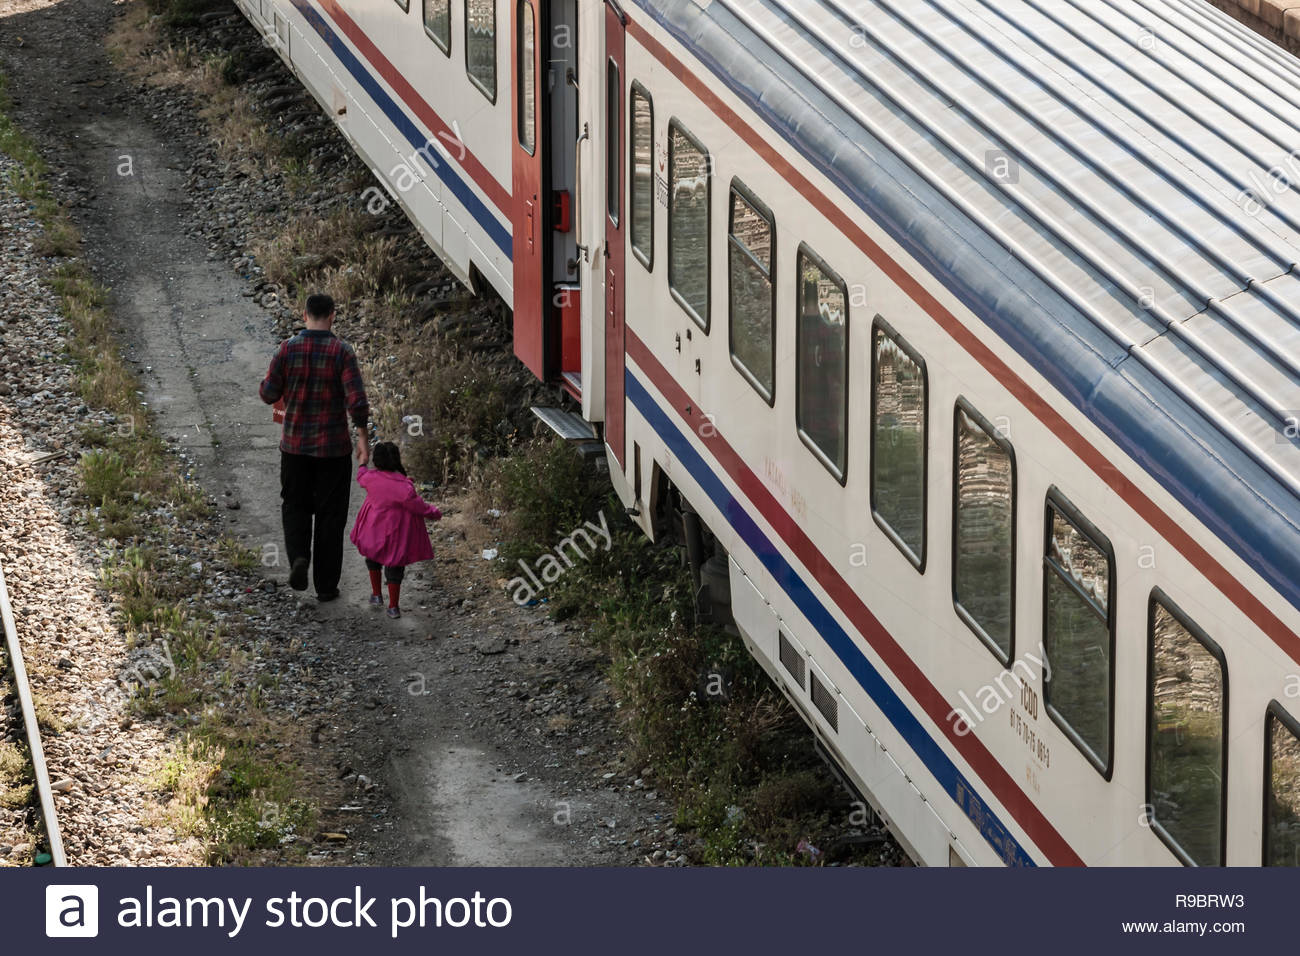 Istanbul, Turkey - May 21, 2009: Spare intercity train wagons on the rails - Stock Image